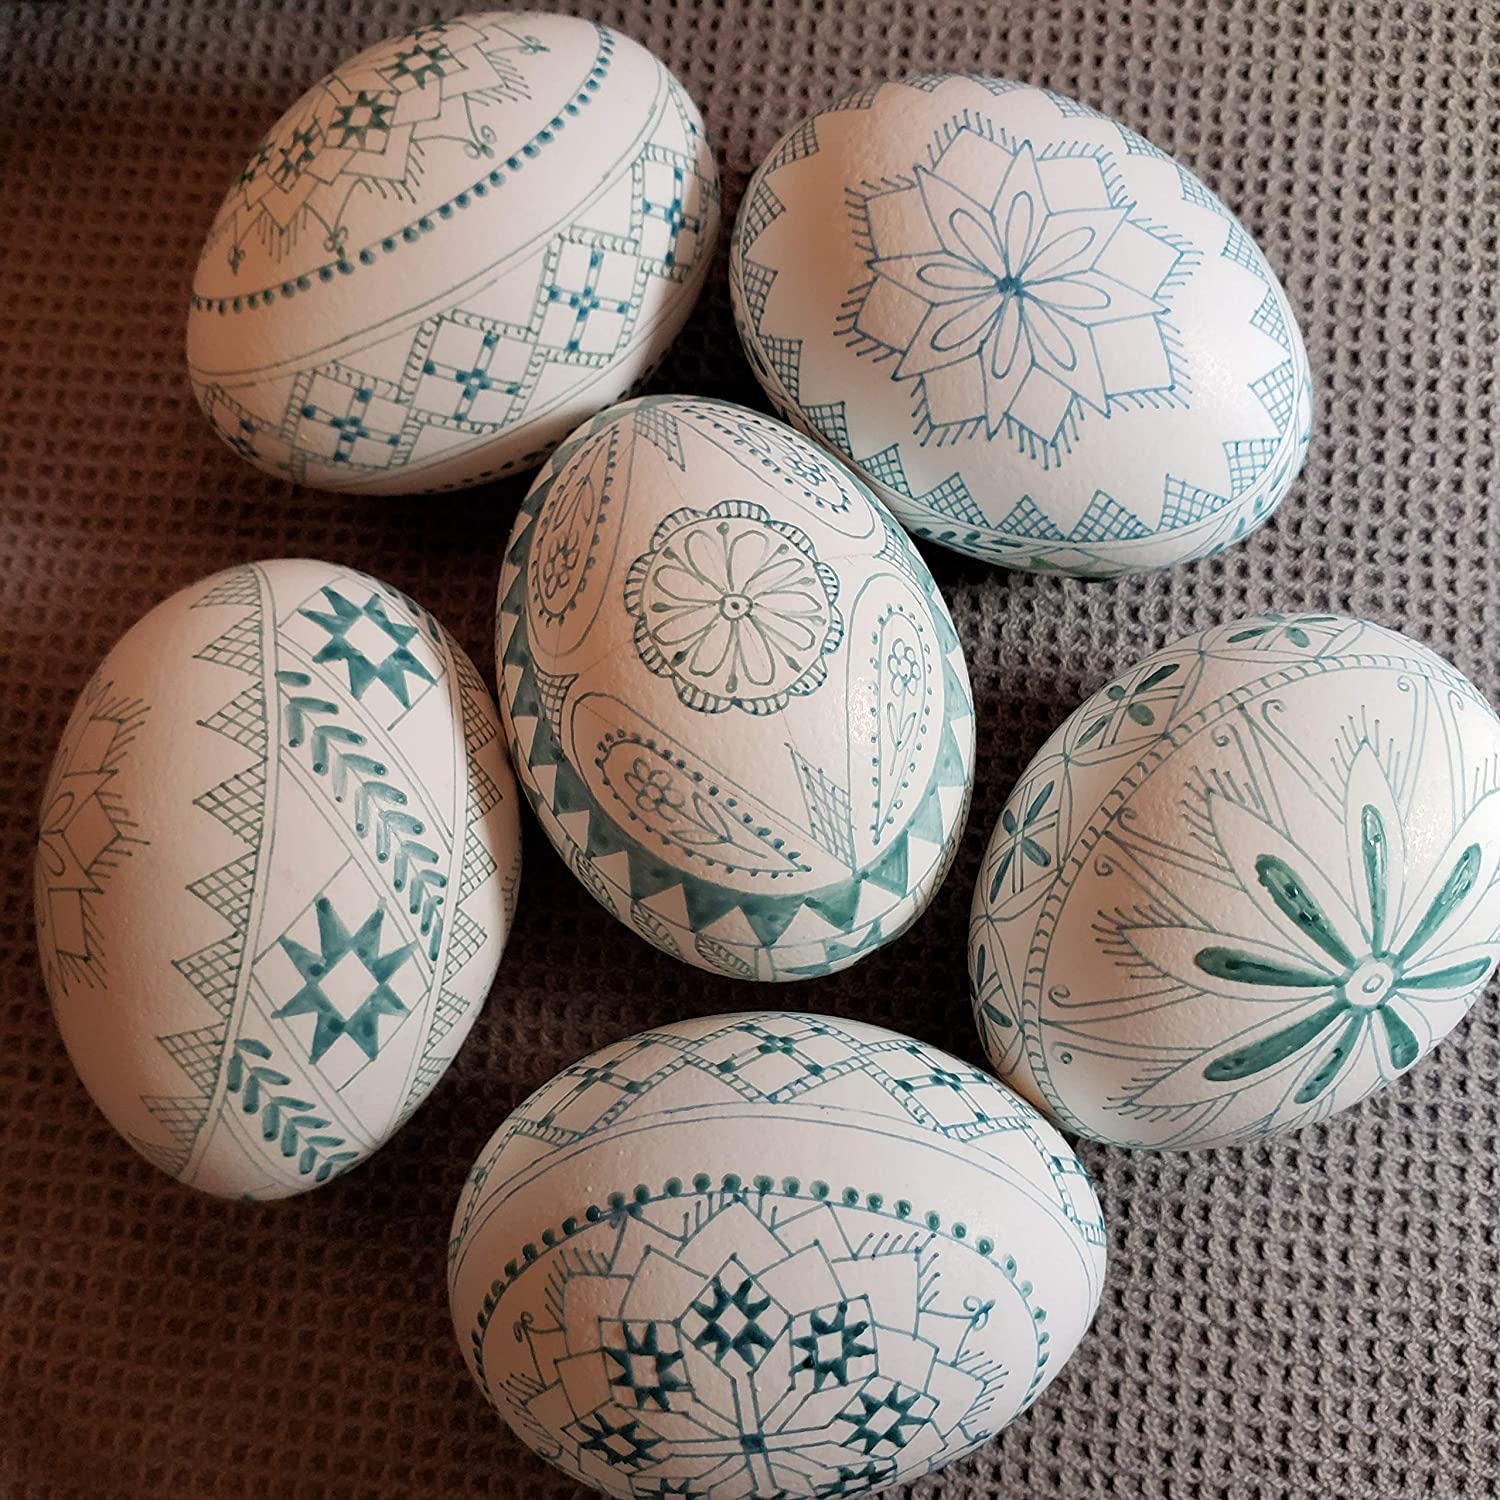 Pysanky eggshell ornament Easter eggs supplies clean chicken eggshells outlined in beeswax to get you started one egg